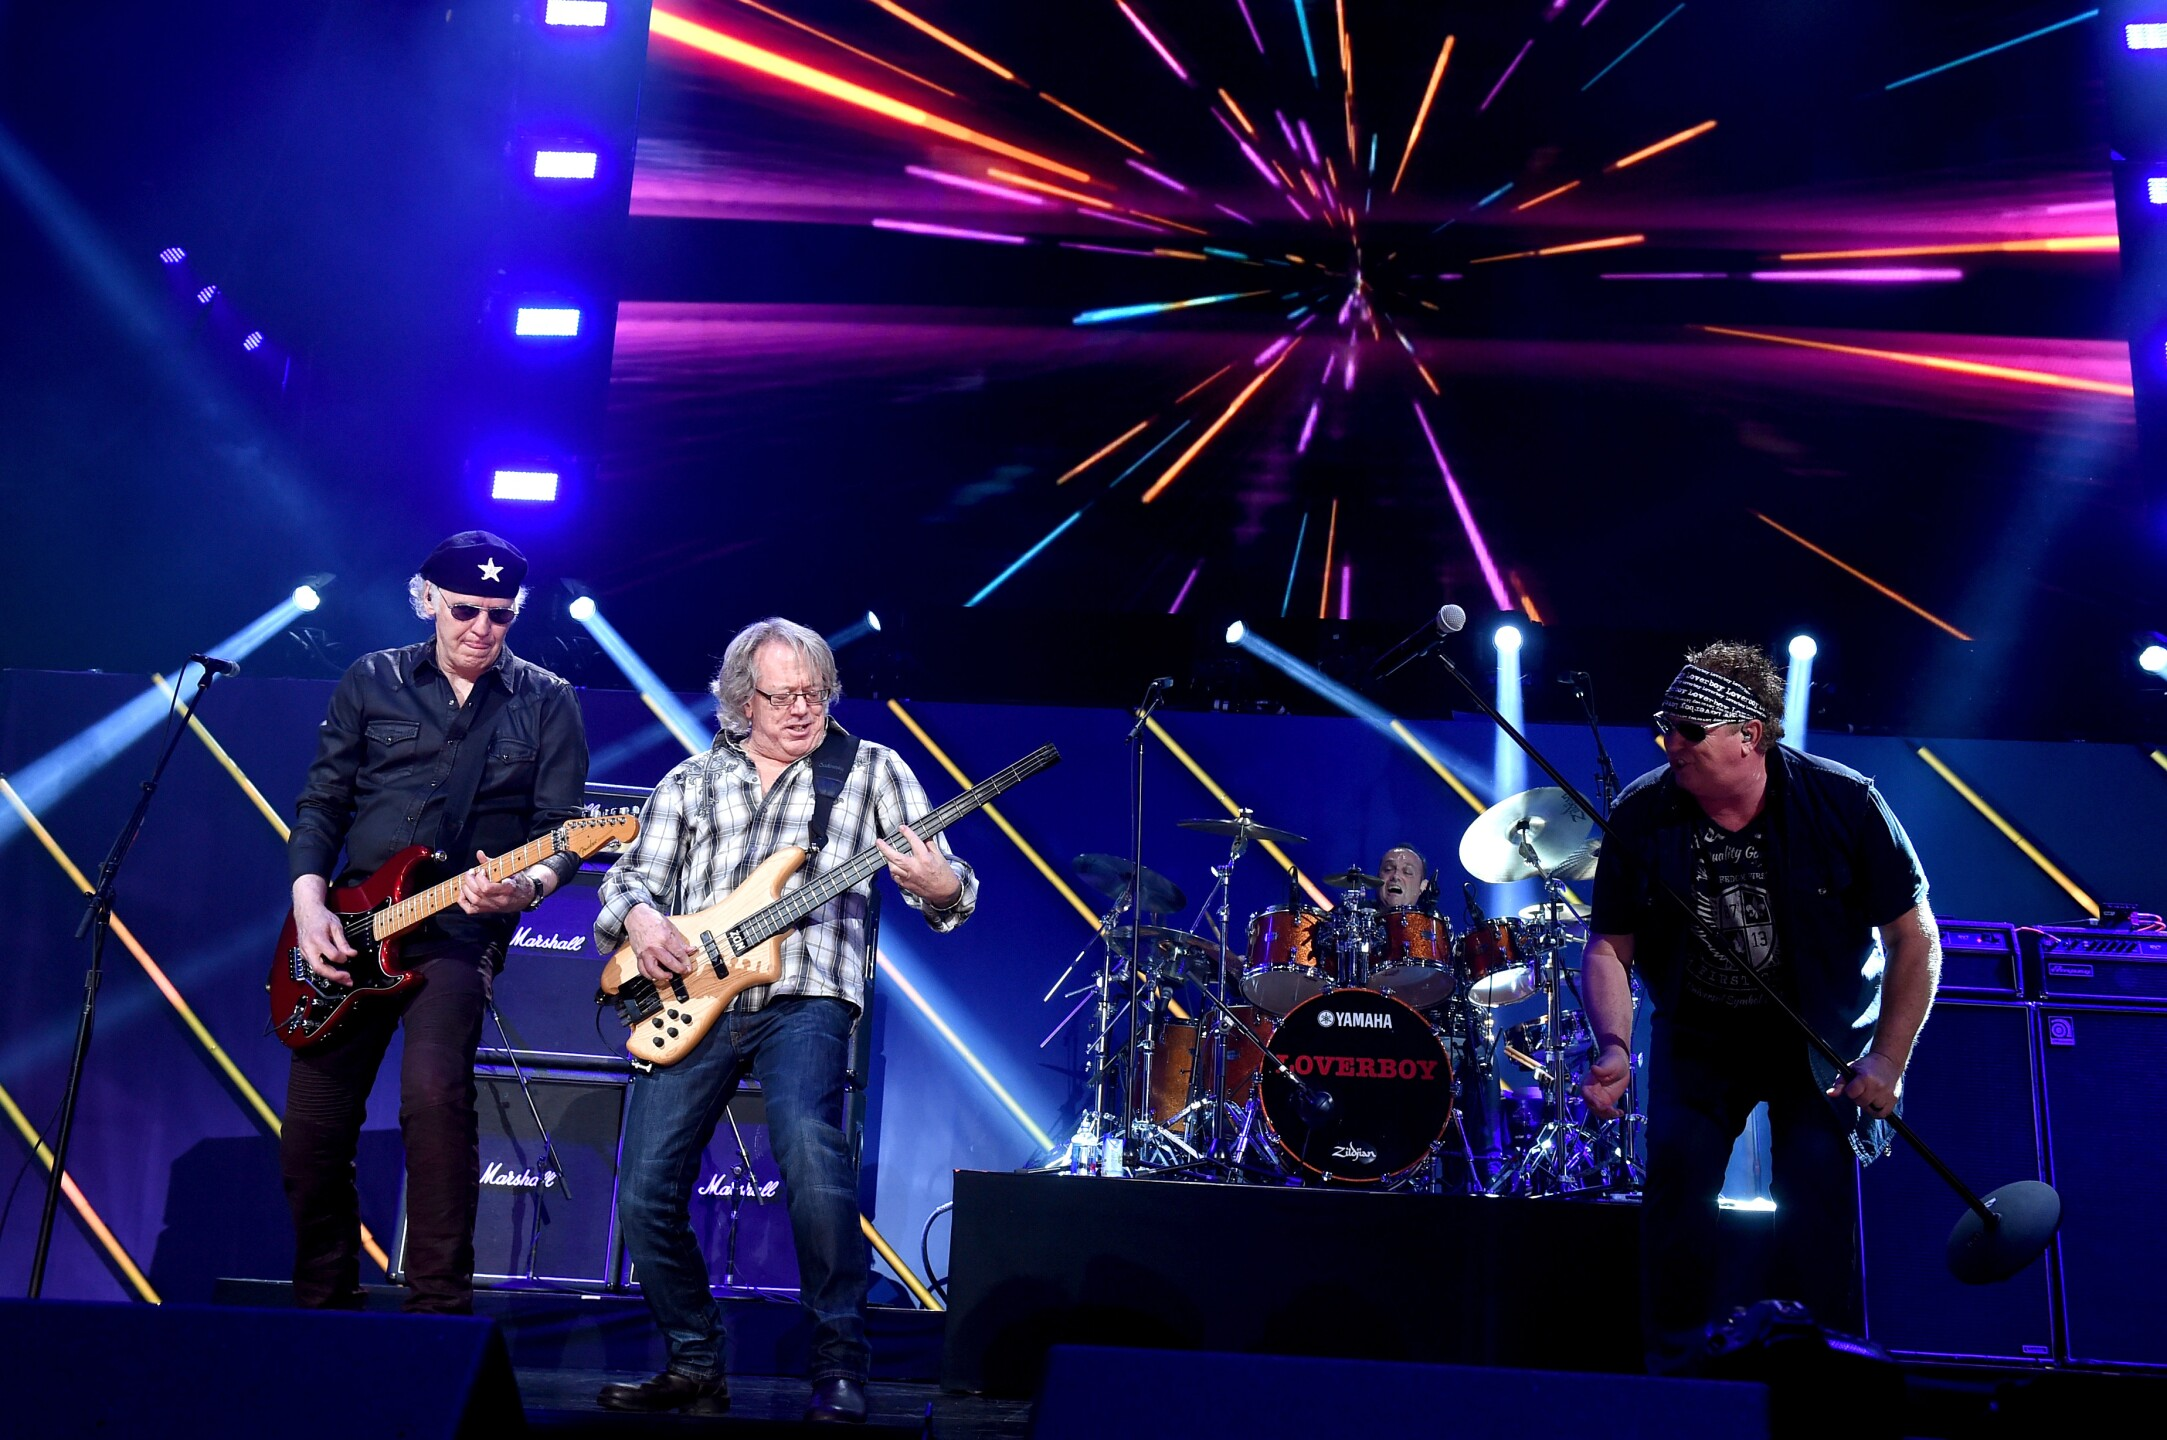 Loverboy to perform at Summerfest 2019.